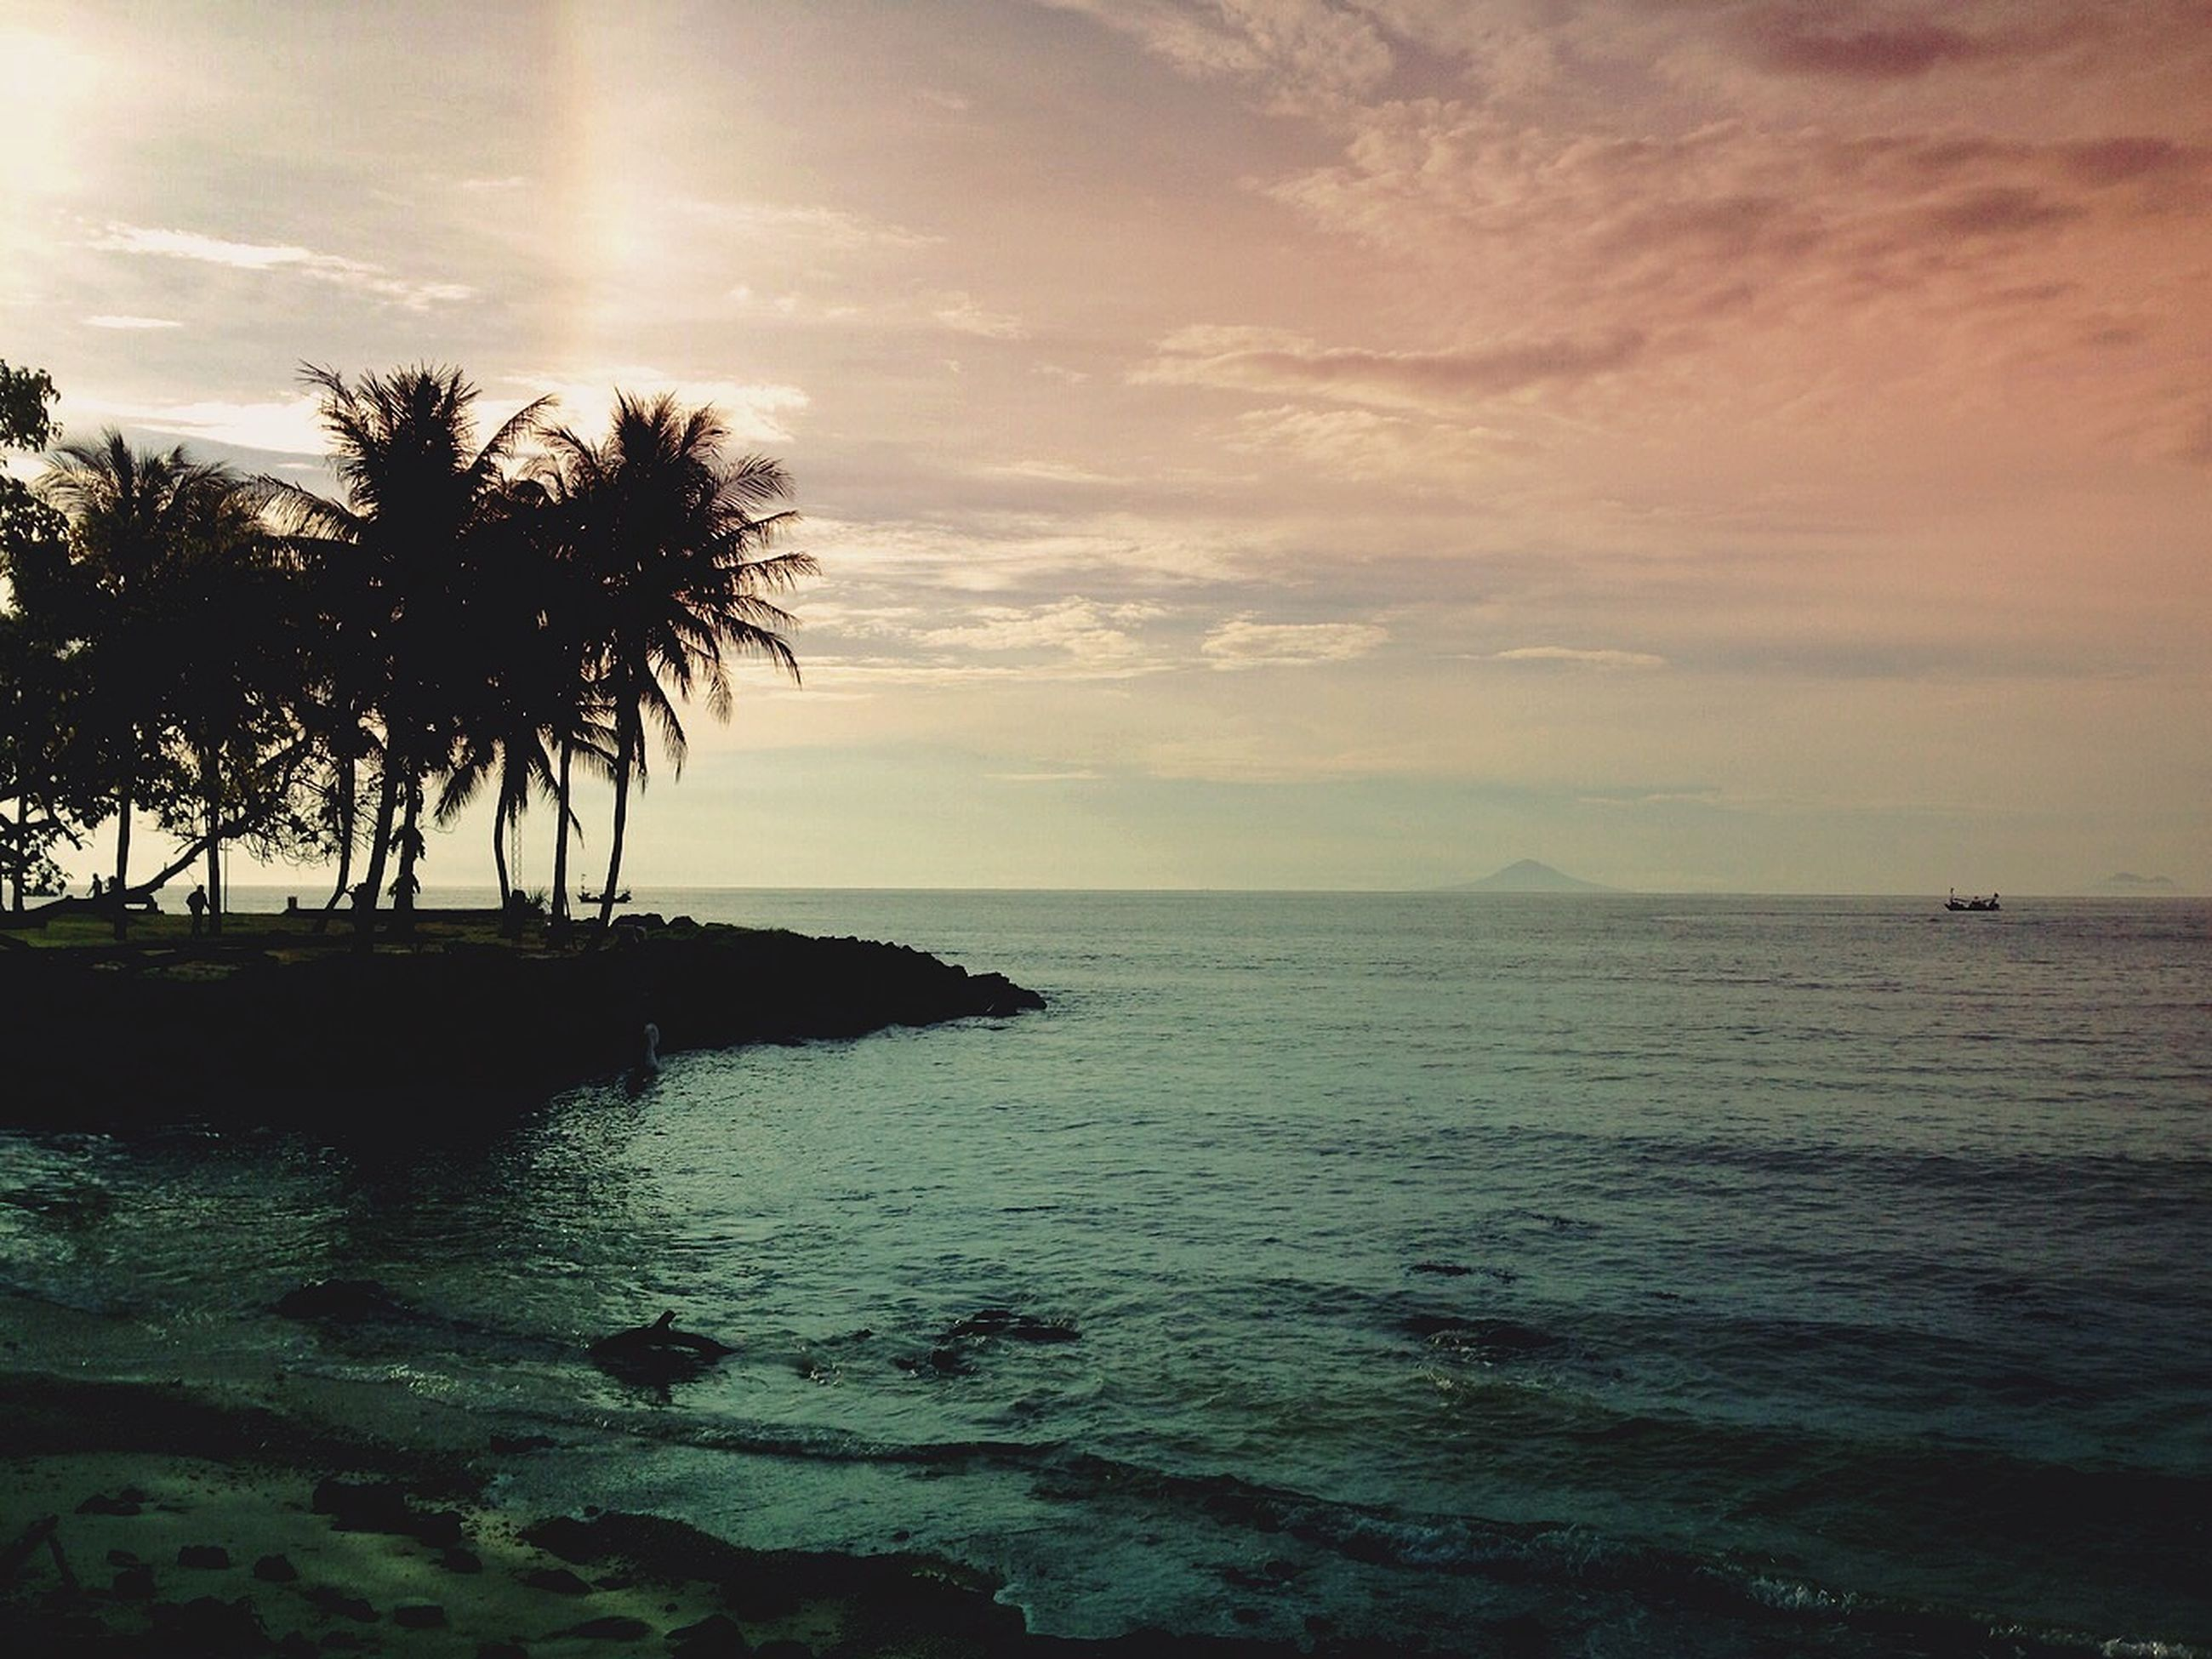 sea, horizon over water, water, sky, tranquil scene, scenics, tranquility, beauty in nature, sunset, tree, palm tree, nature, silhouette, beach, cloud - sky, idyllic, shore, cloud, outdoors, cloudy